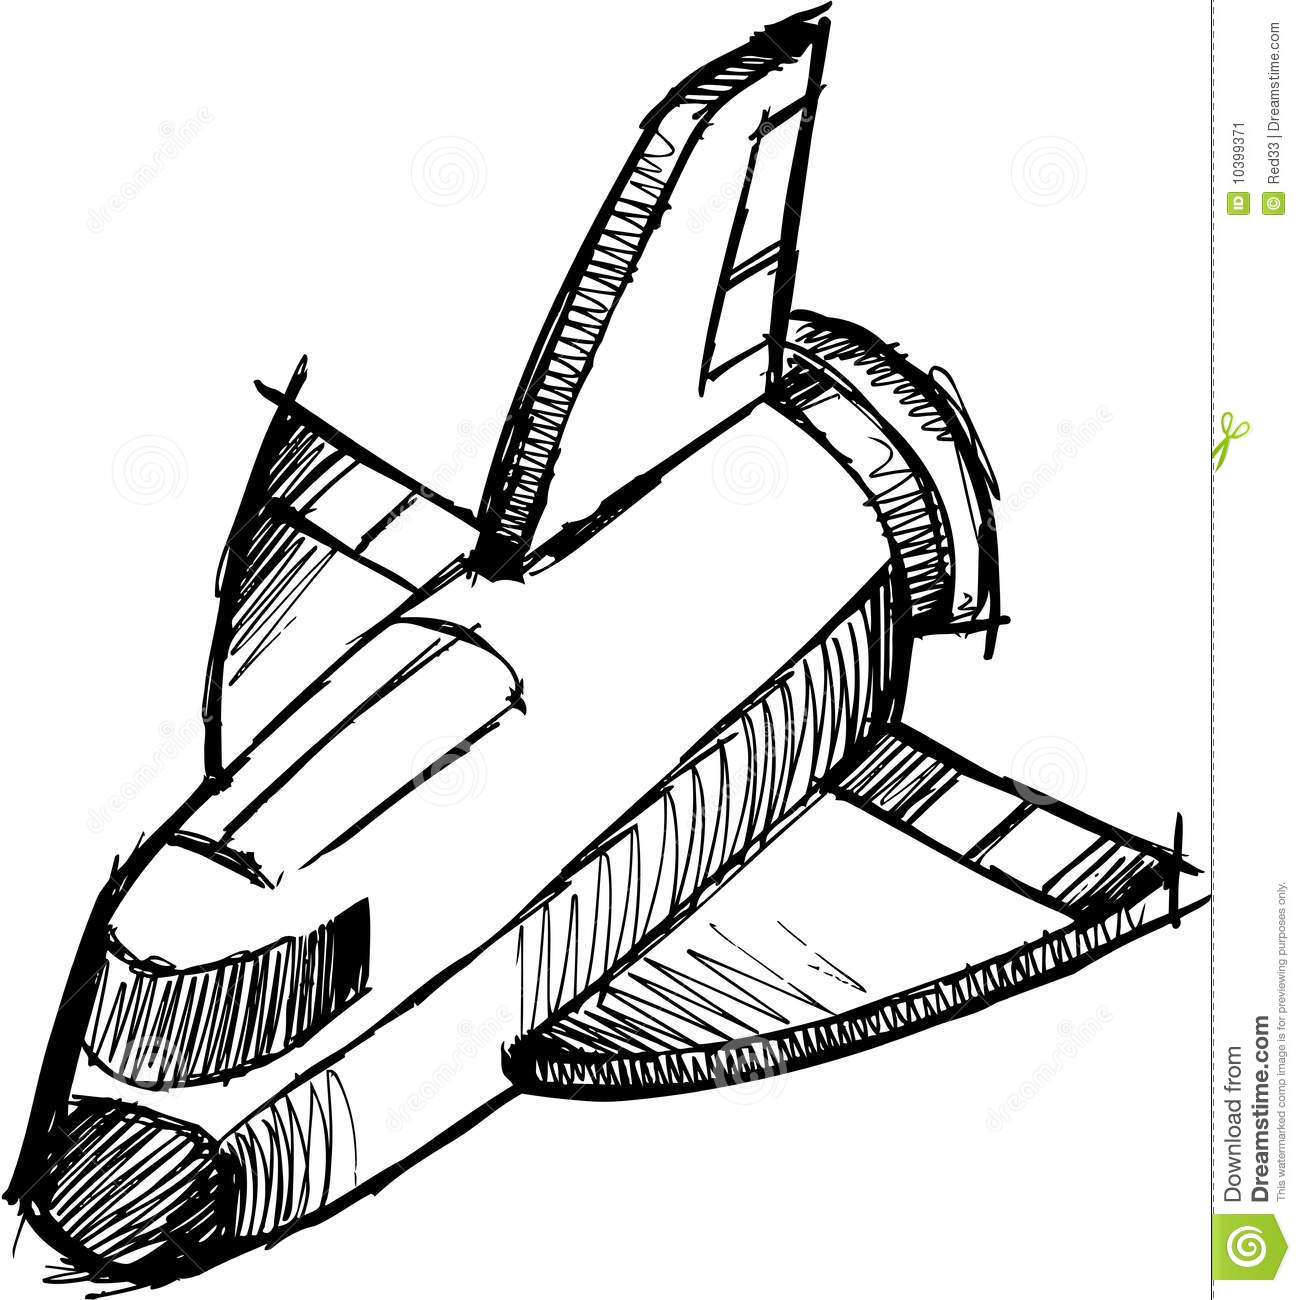 Sketchy Shuttle Rocket Vector Stock Image